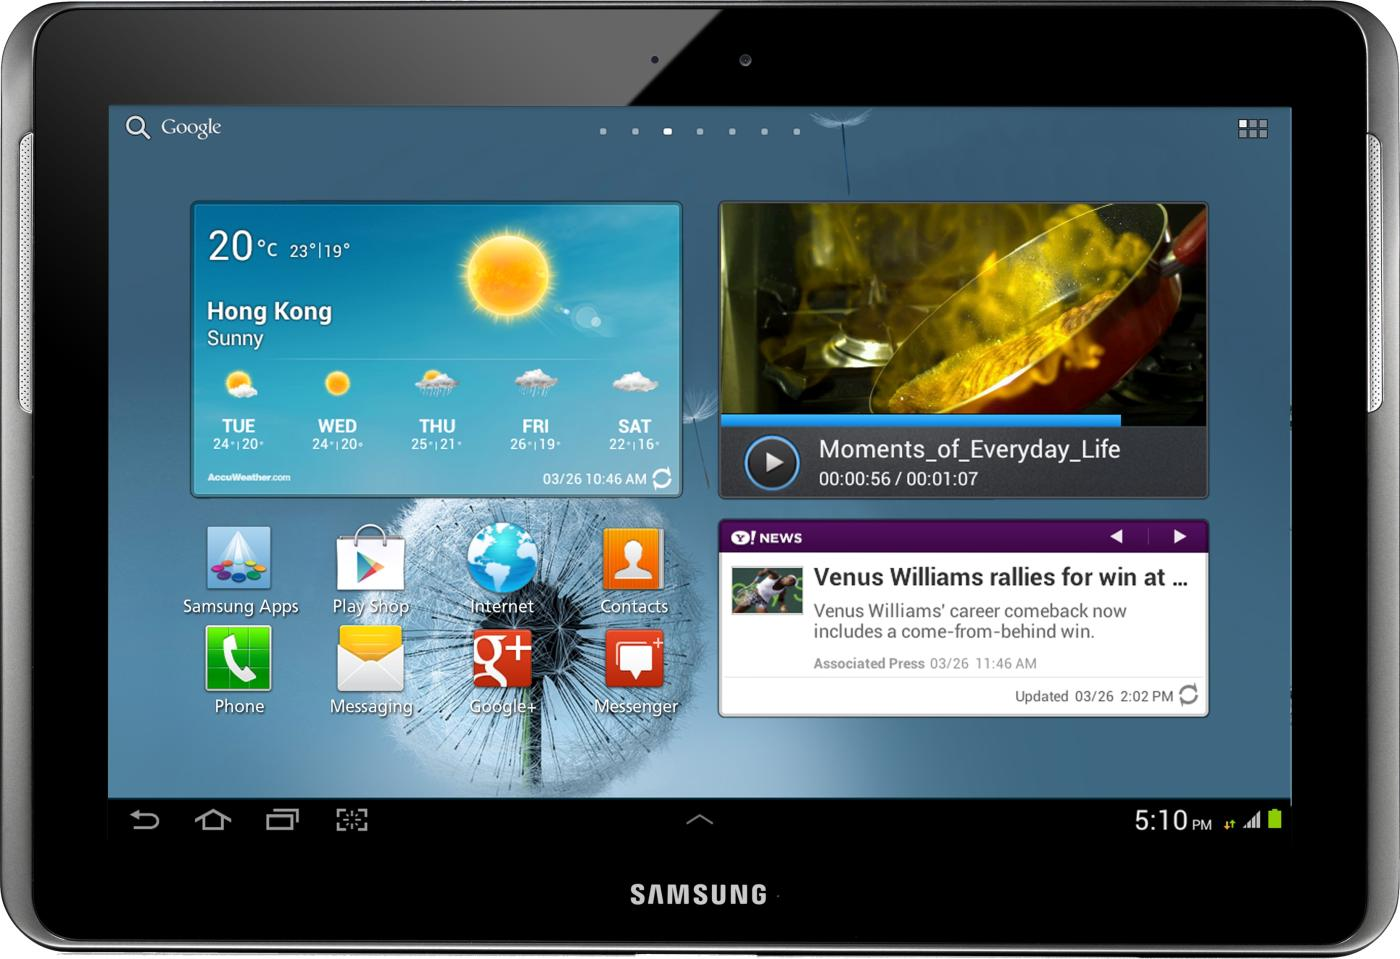 How to update Samsung Galaxy Tab 2 7.0 to Android 5.1 Lollipop